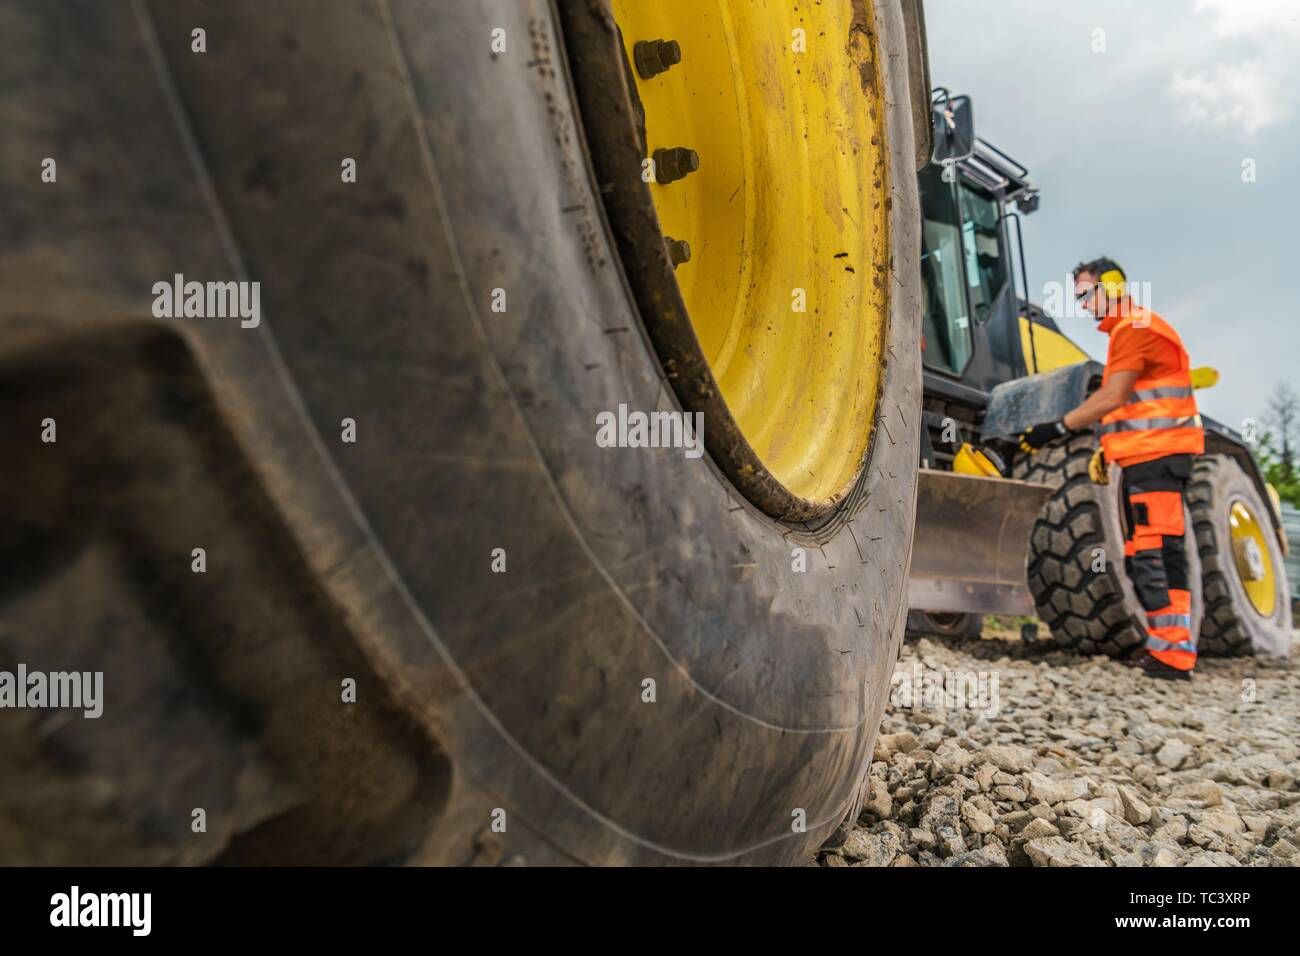 Heavy Equipment Rental Concept Photo  Machine and the